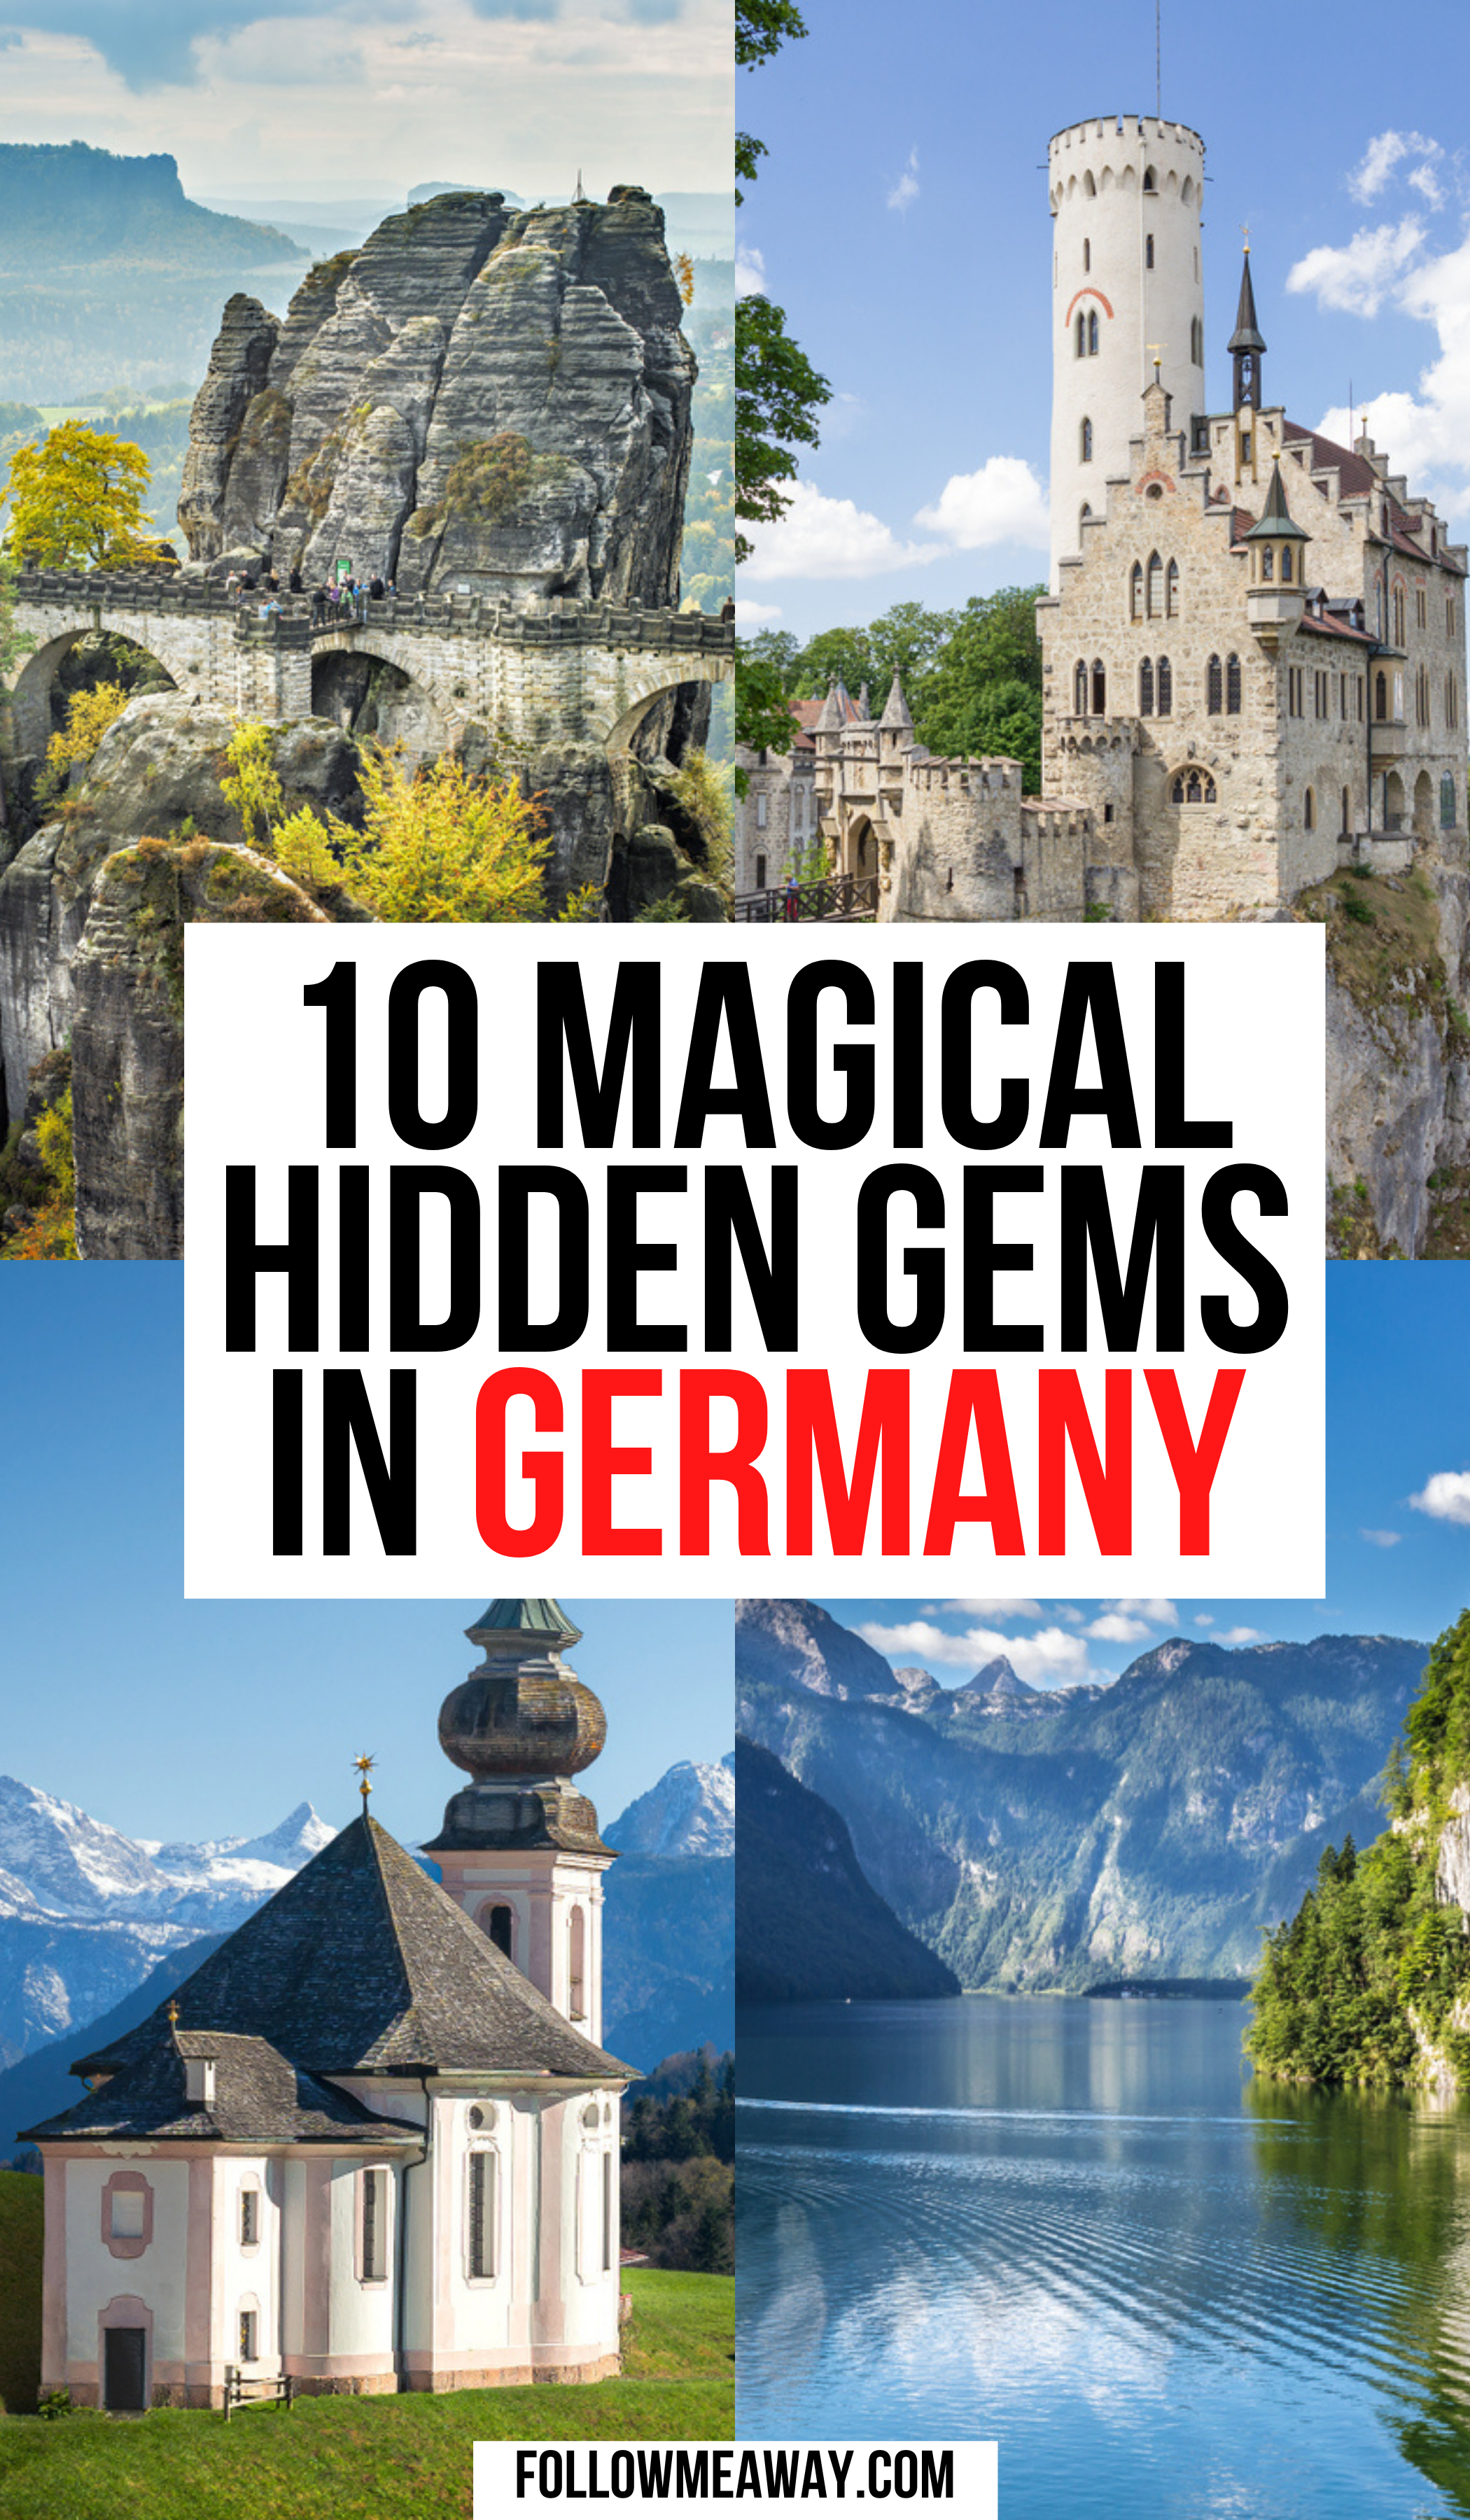 10 Hidden Gems In Germany | Cutest Small Towns In Germany | travel tips in Germany | things to do in Germany | where to go in germany | bucket list locations in Germany | hidden gems in germany | germany hidden gems | secret spots germany | best small towns in germany | best german towns to visit | best towns to visit in germany | best german small towns | #traveltips #Germany